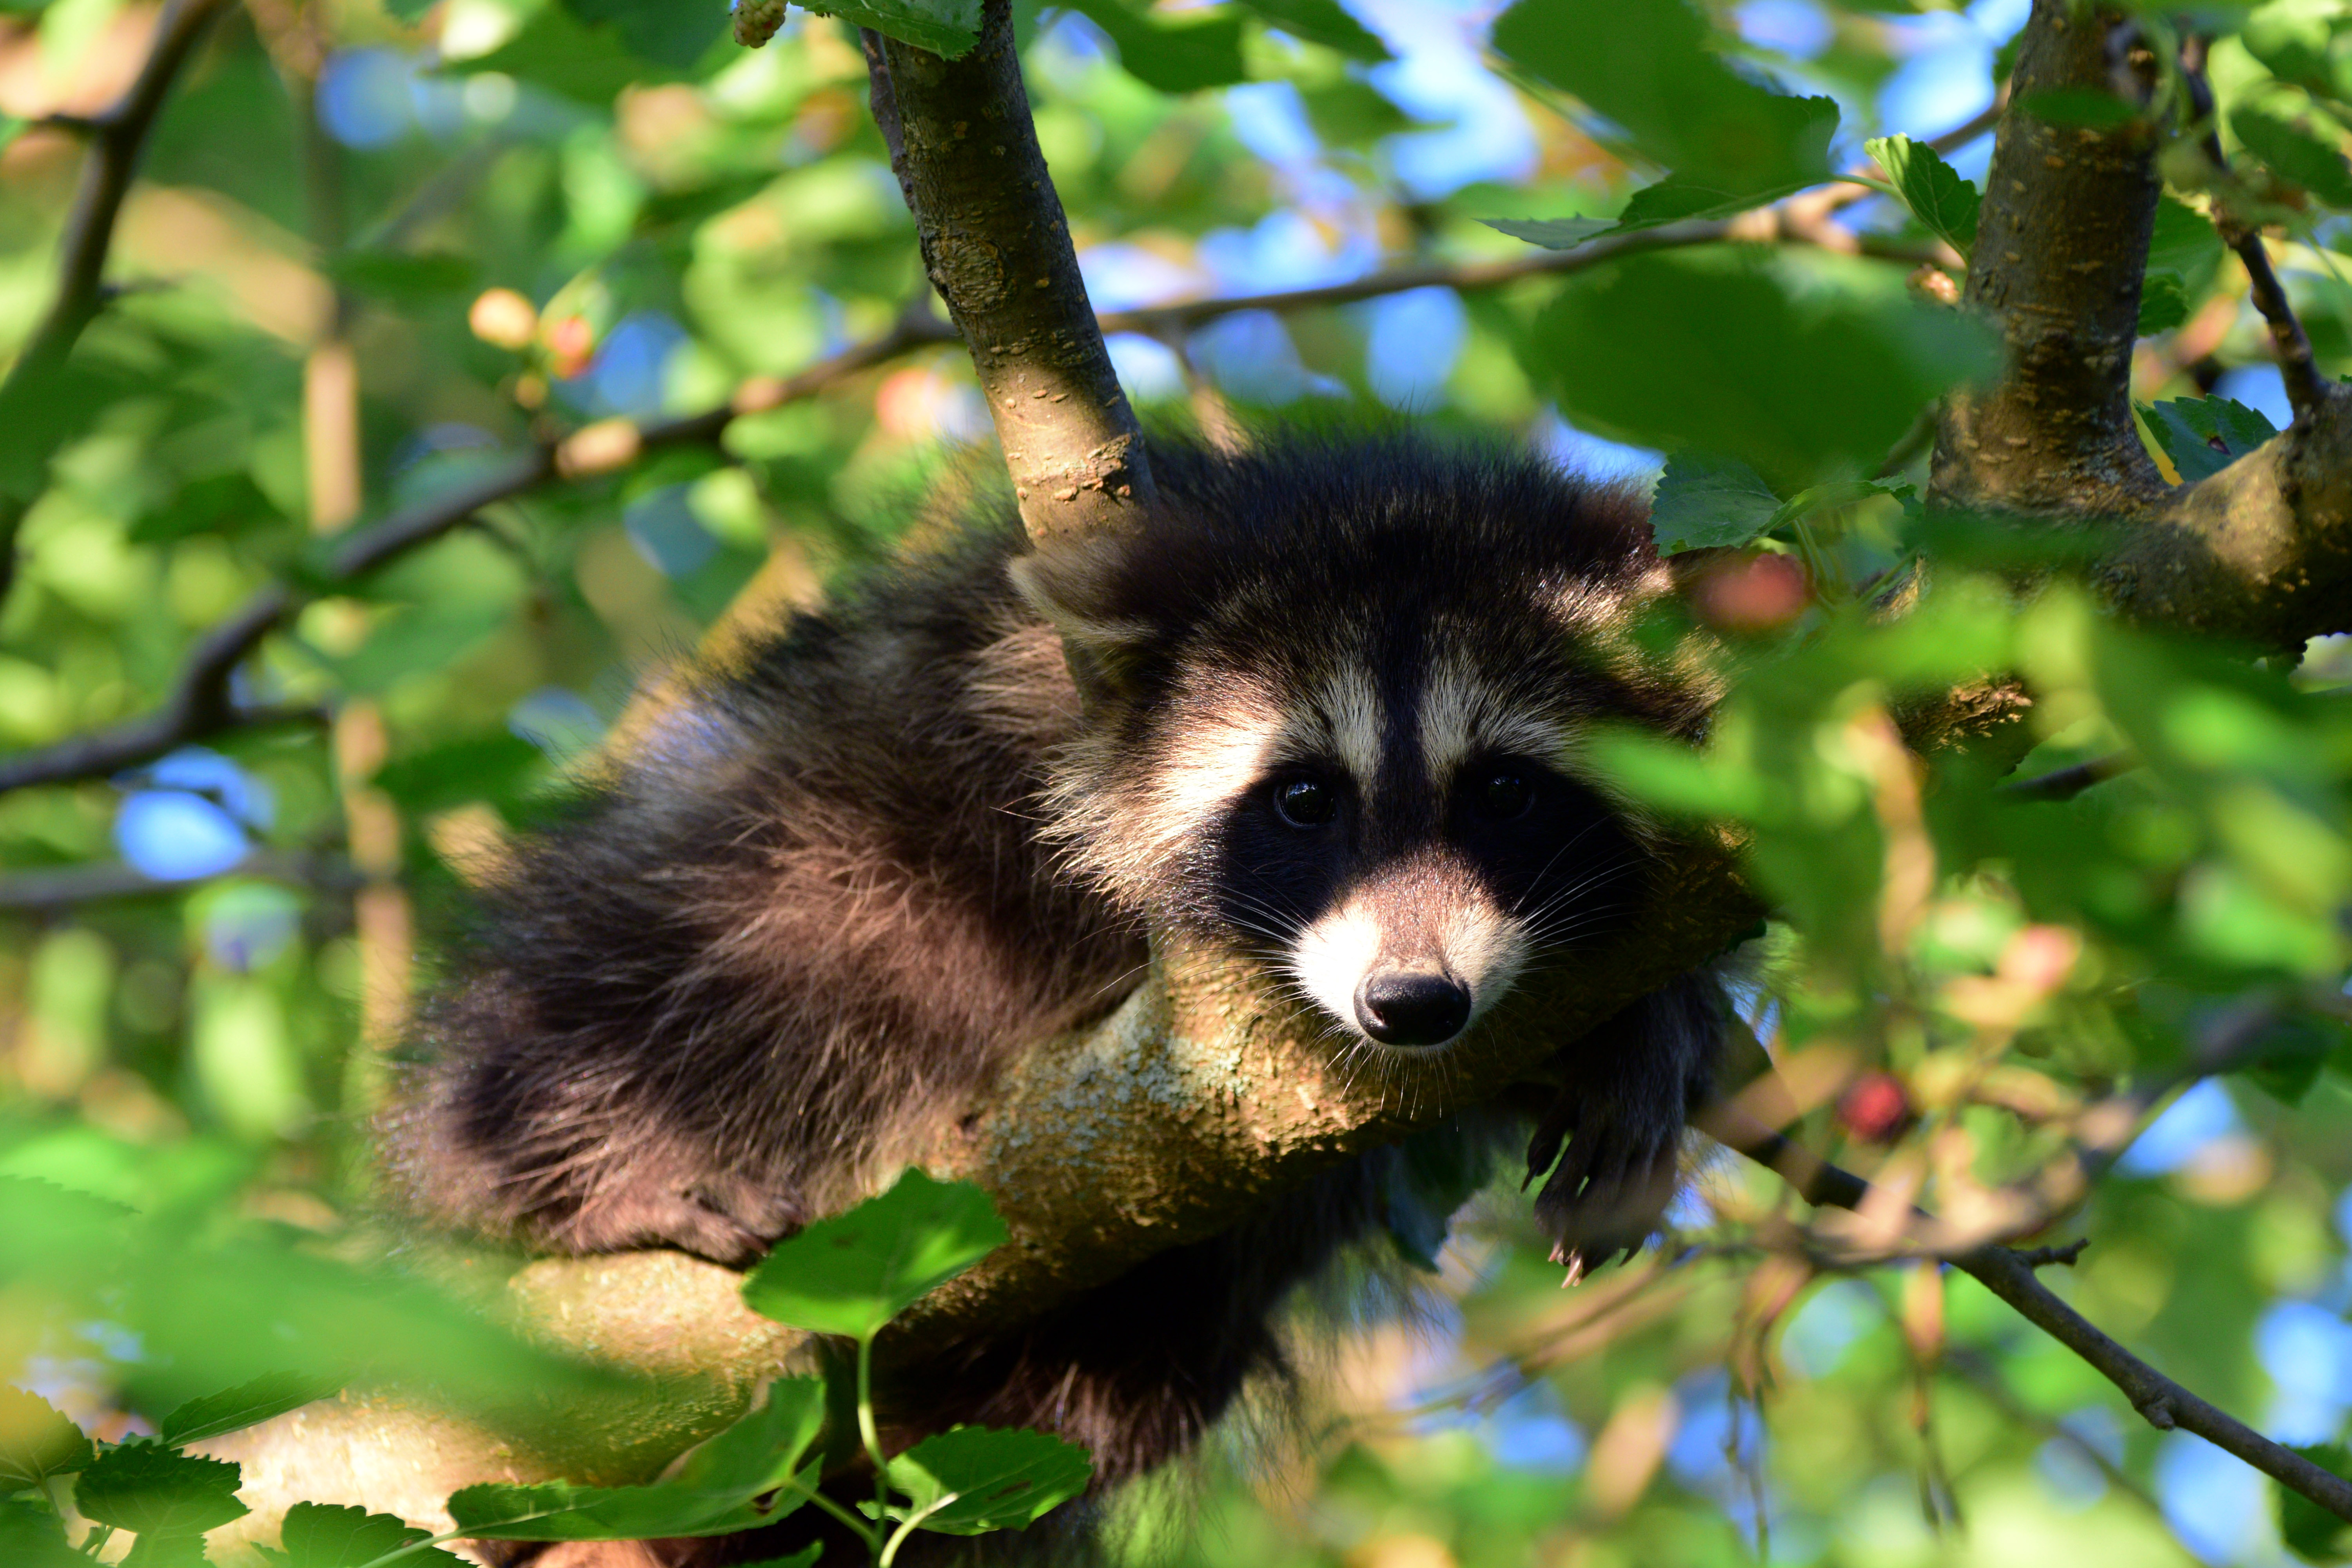 We have a family of raccoons in our mulberry tree this year!